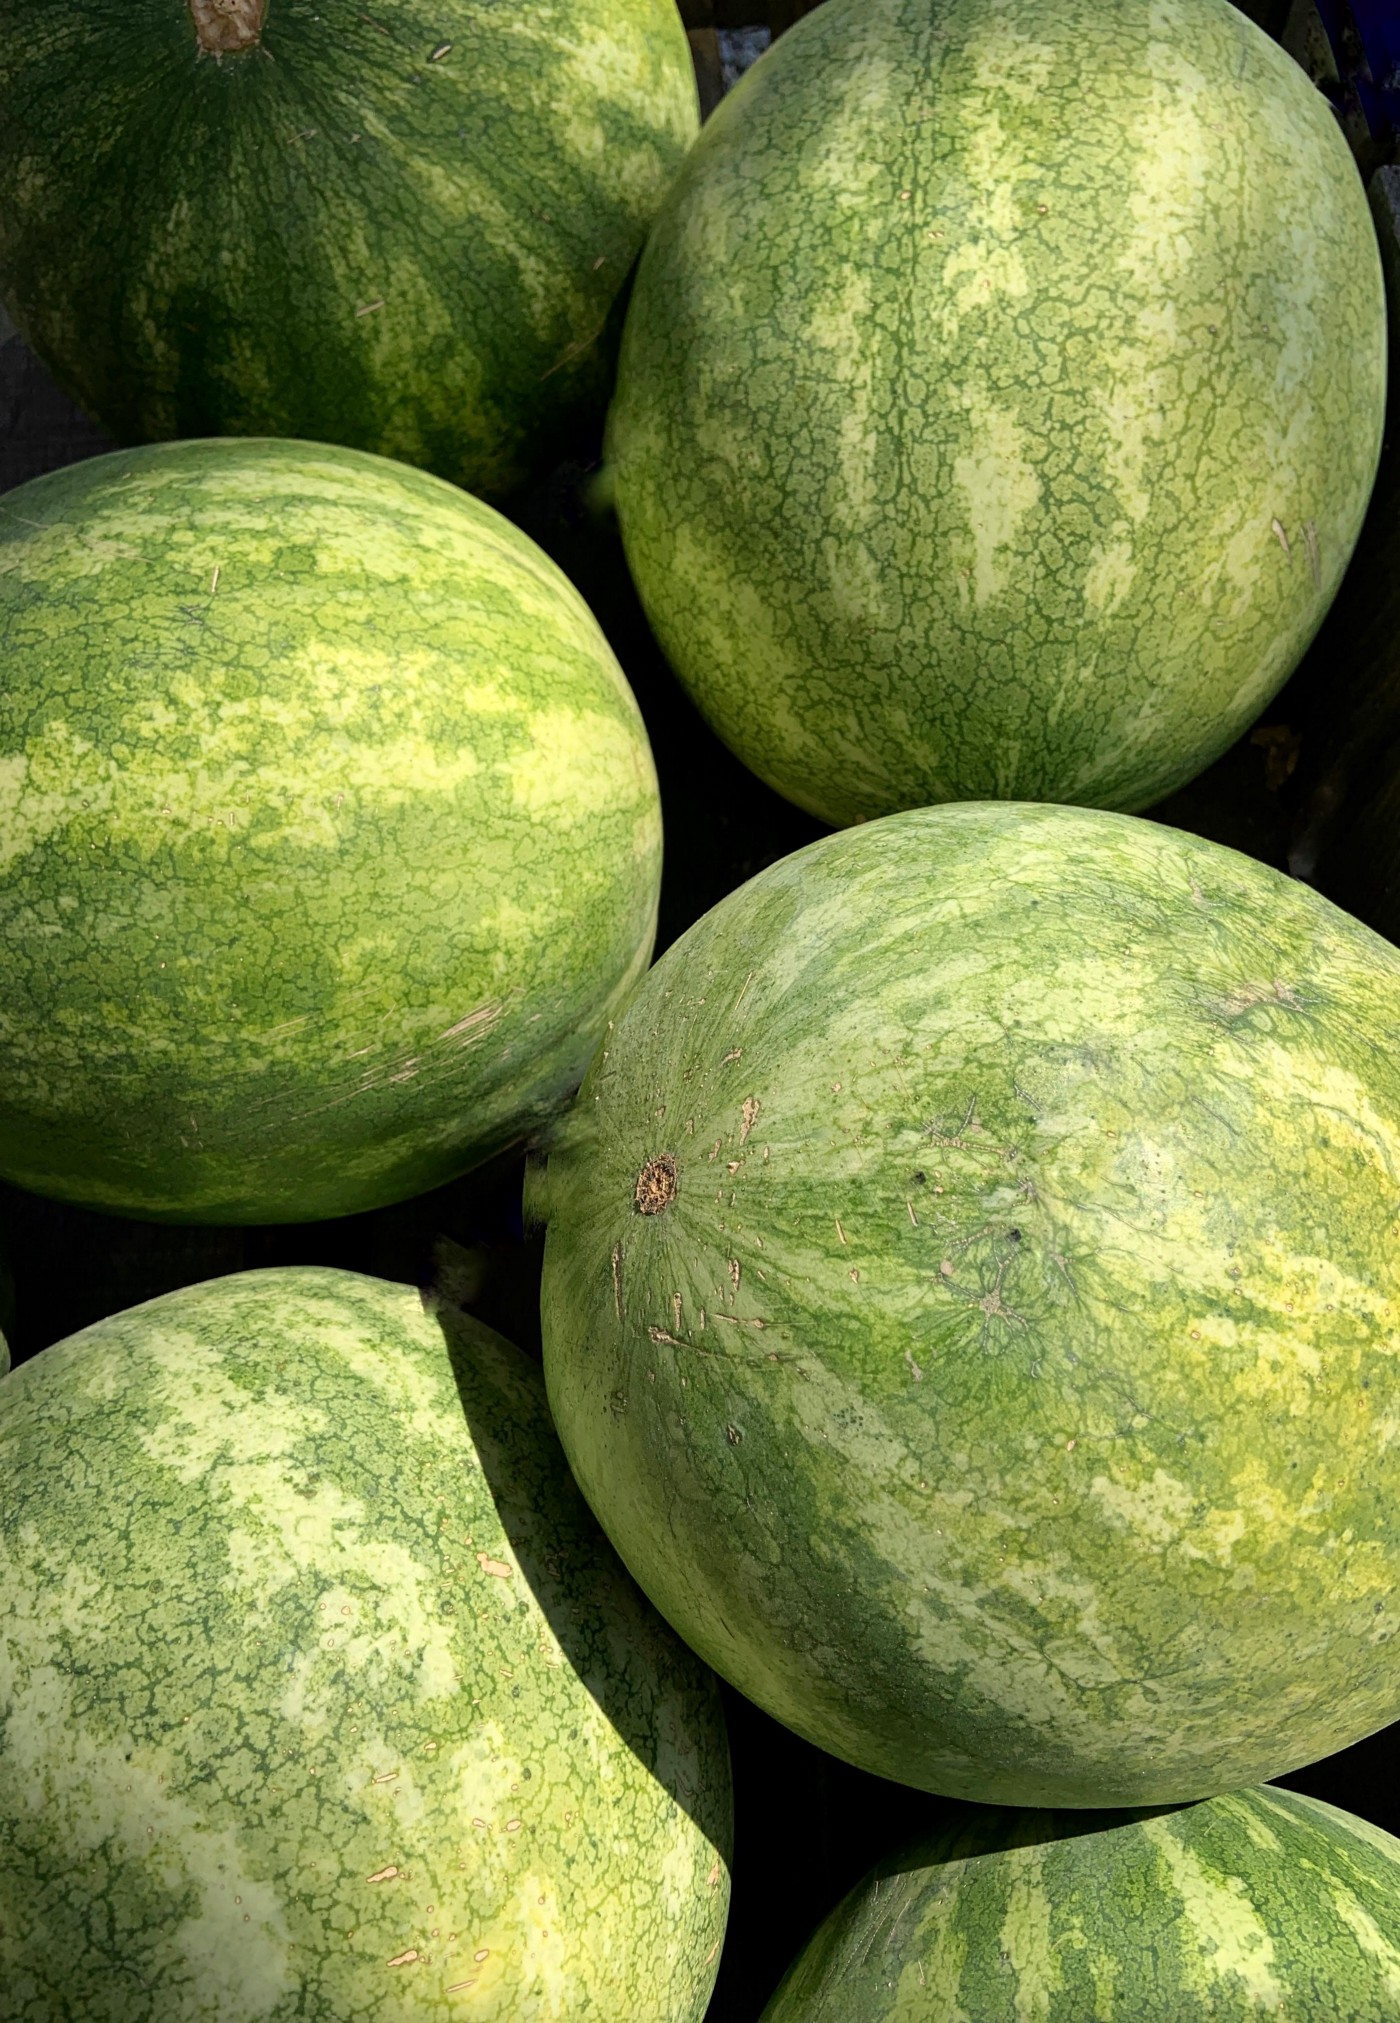 Close up of several watermelons